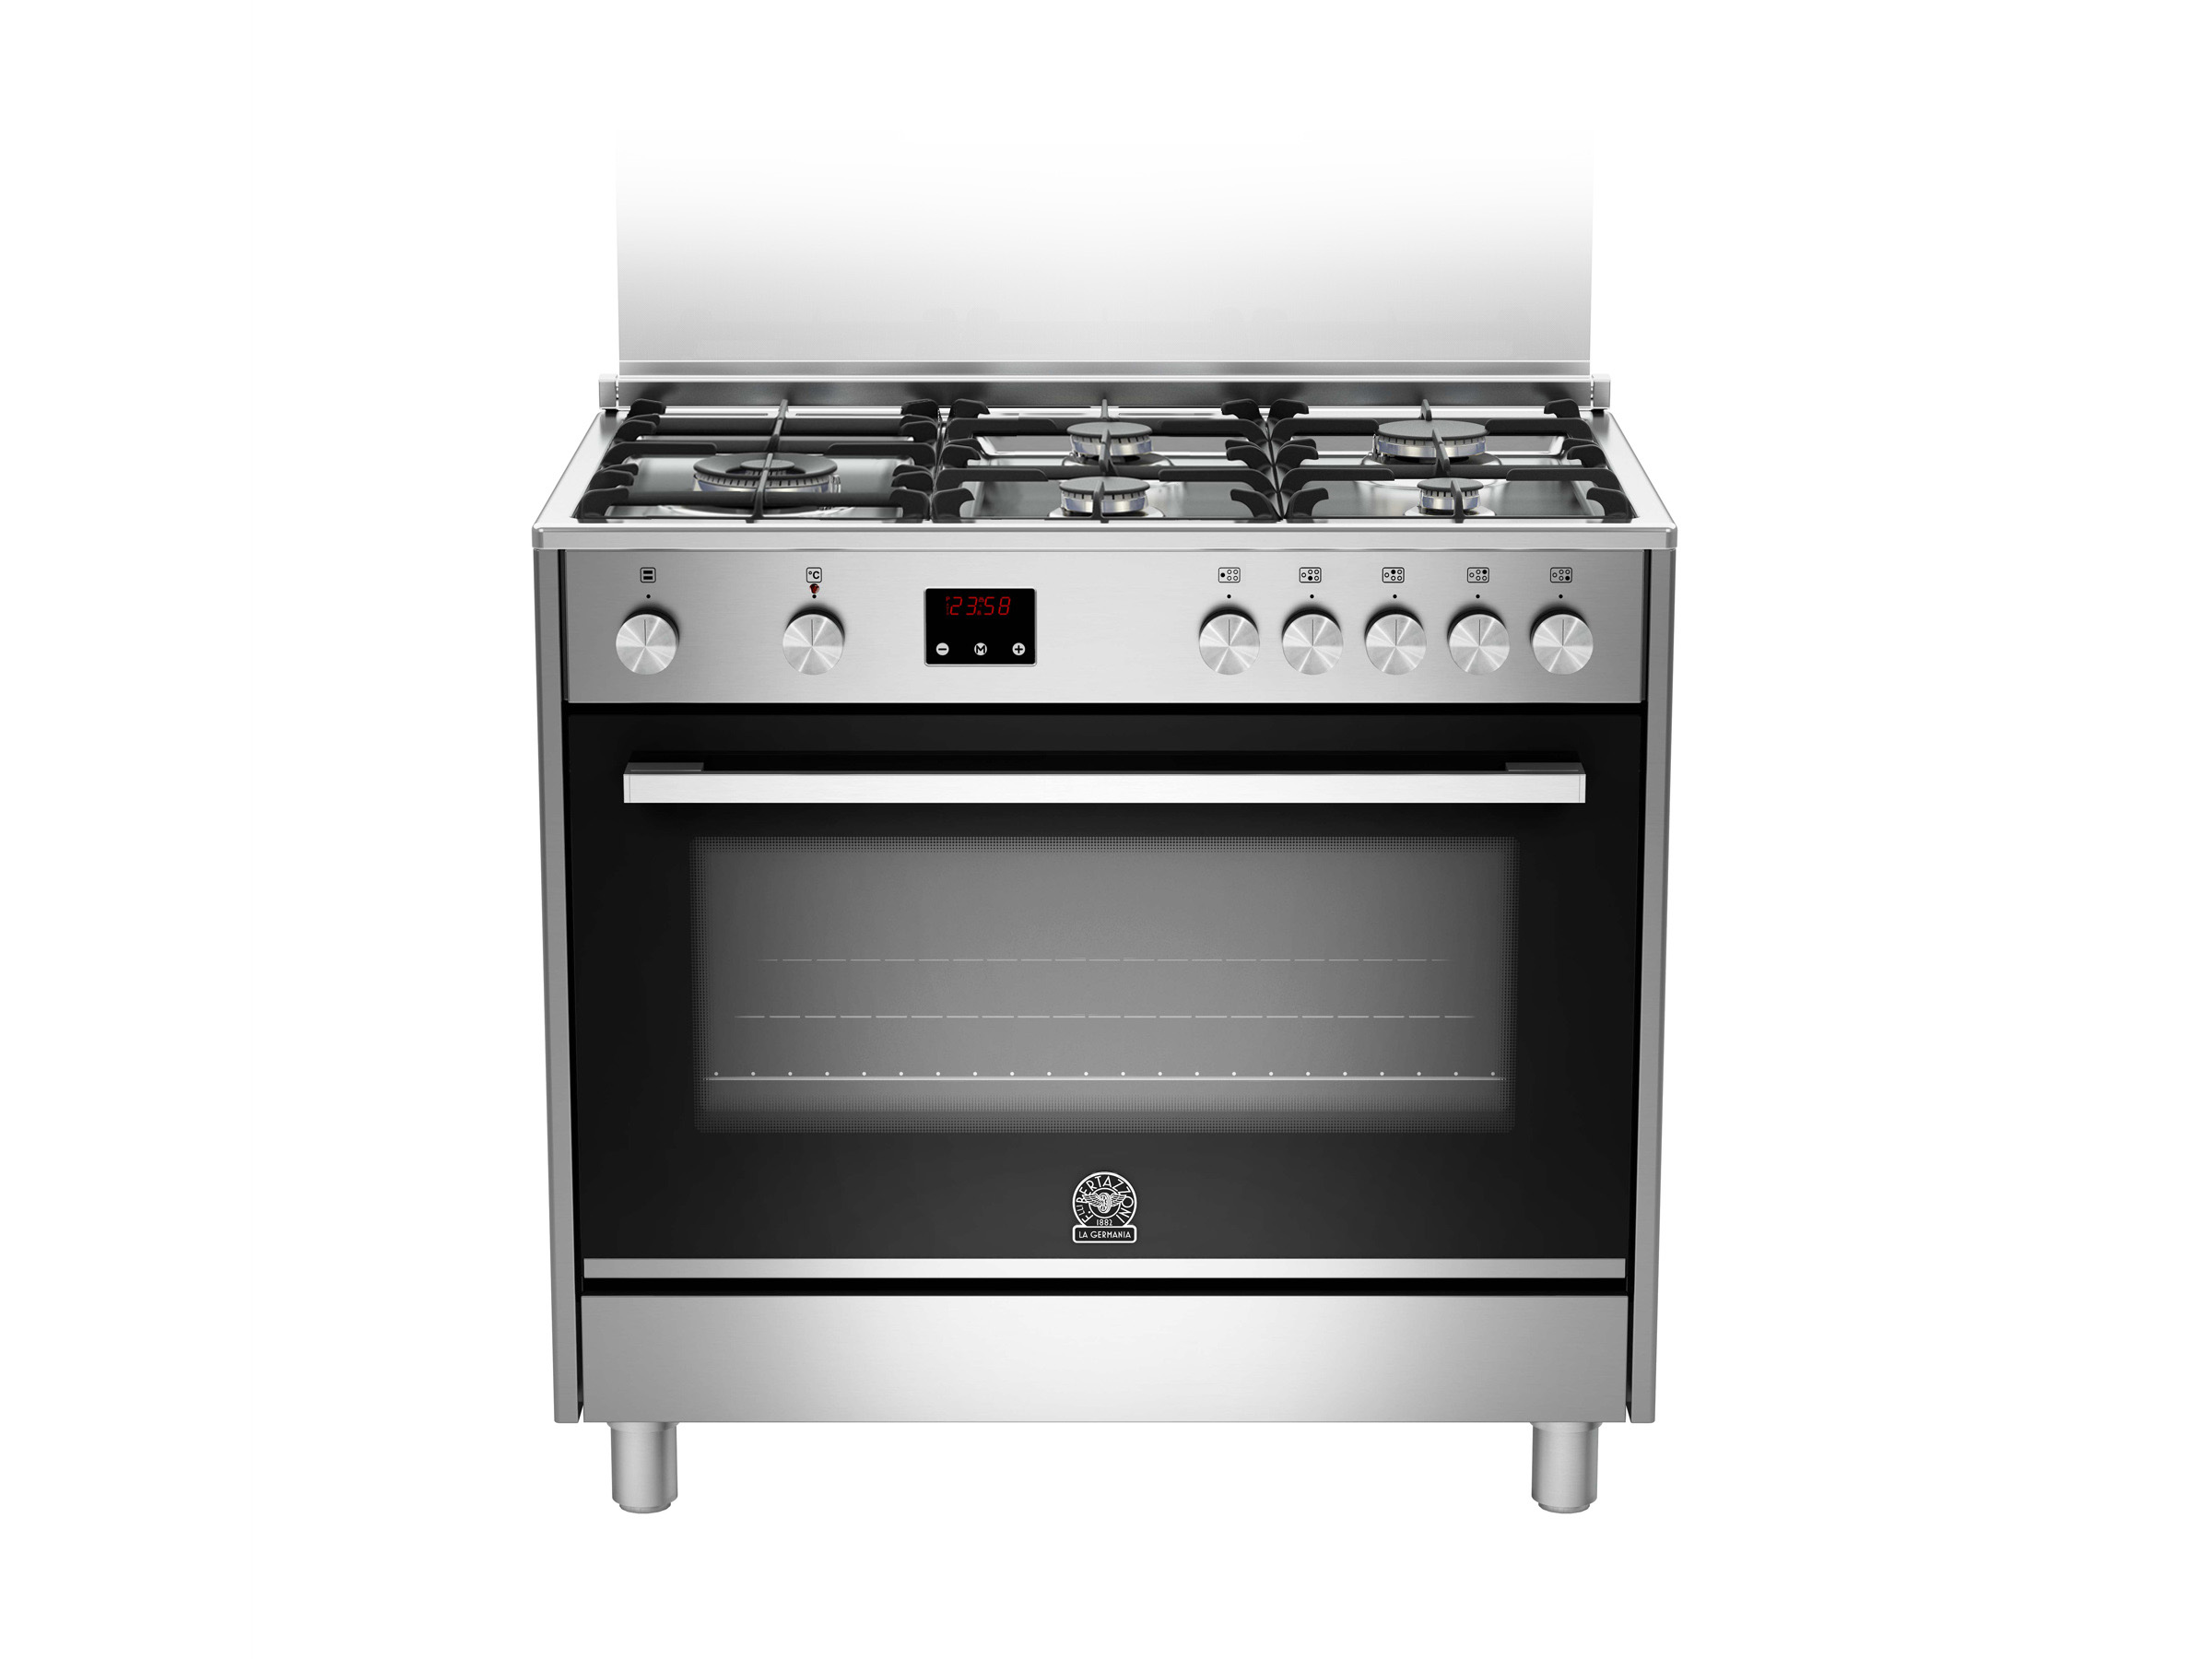 90 5-Burners Gas Oven Electric Grill CX | Bertazzoni La Germania - Stainless